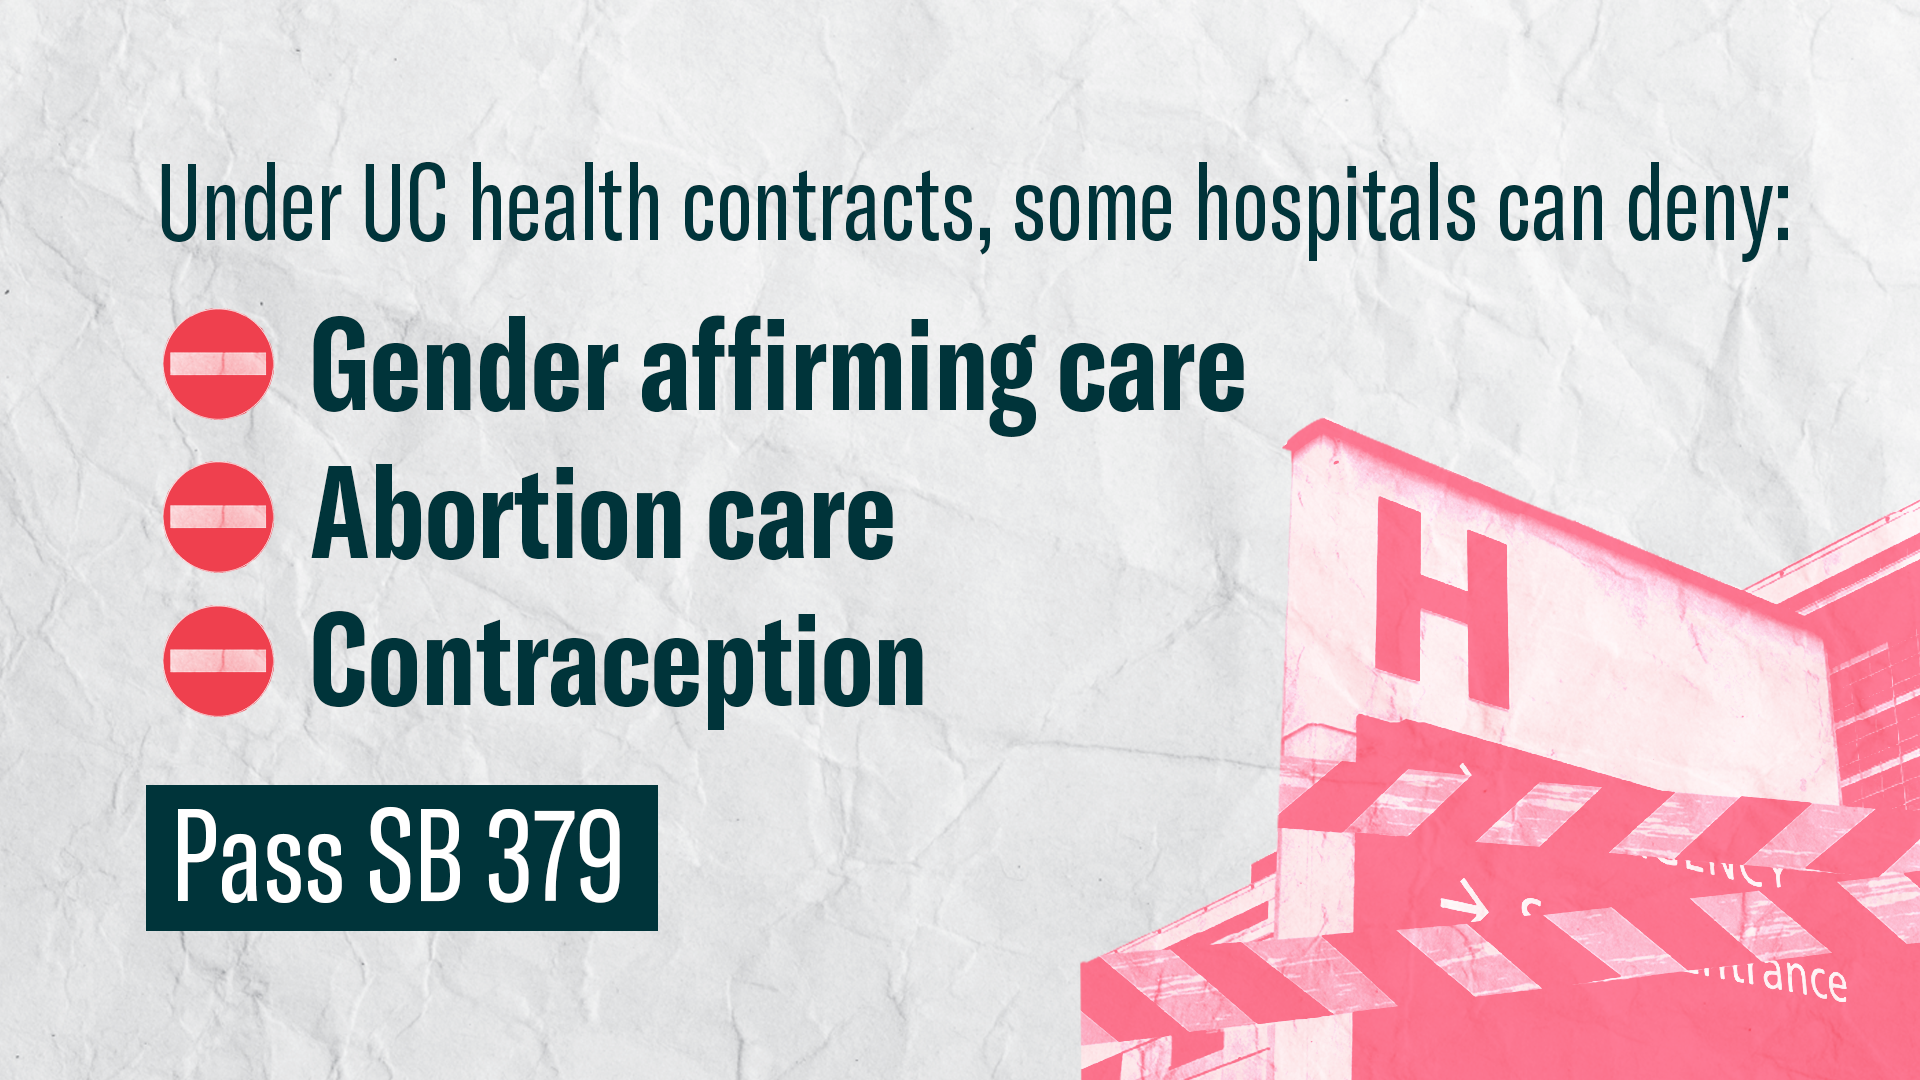 Under UC Health contracts, some hospitals can deny gender affirming care, abortion care, and contraceptives. Pass SB 379.